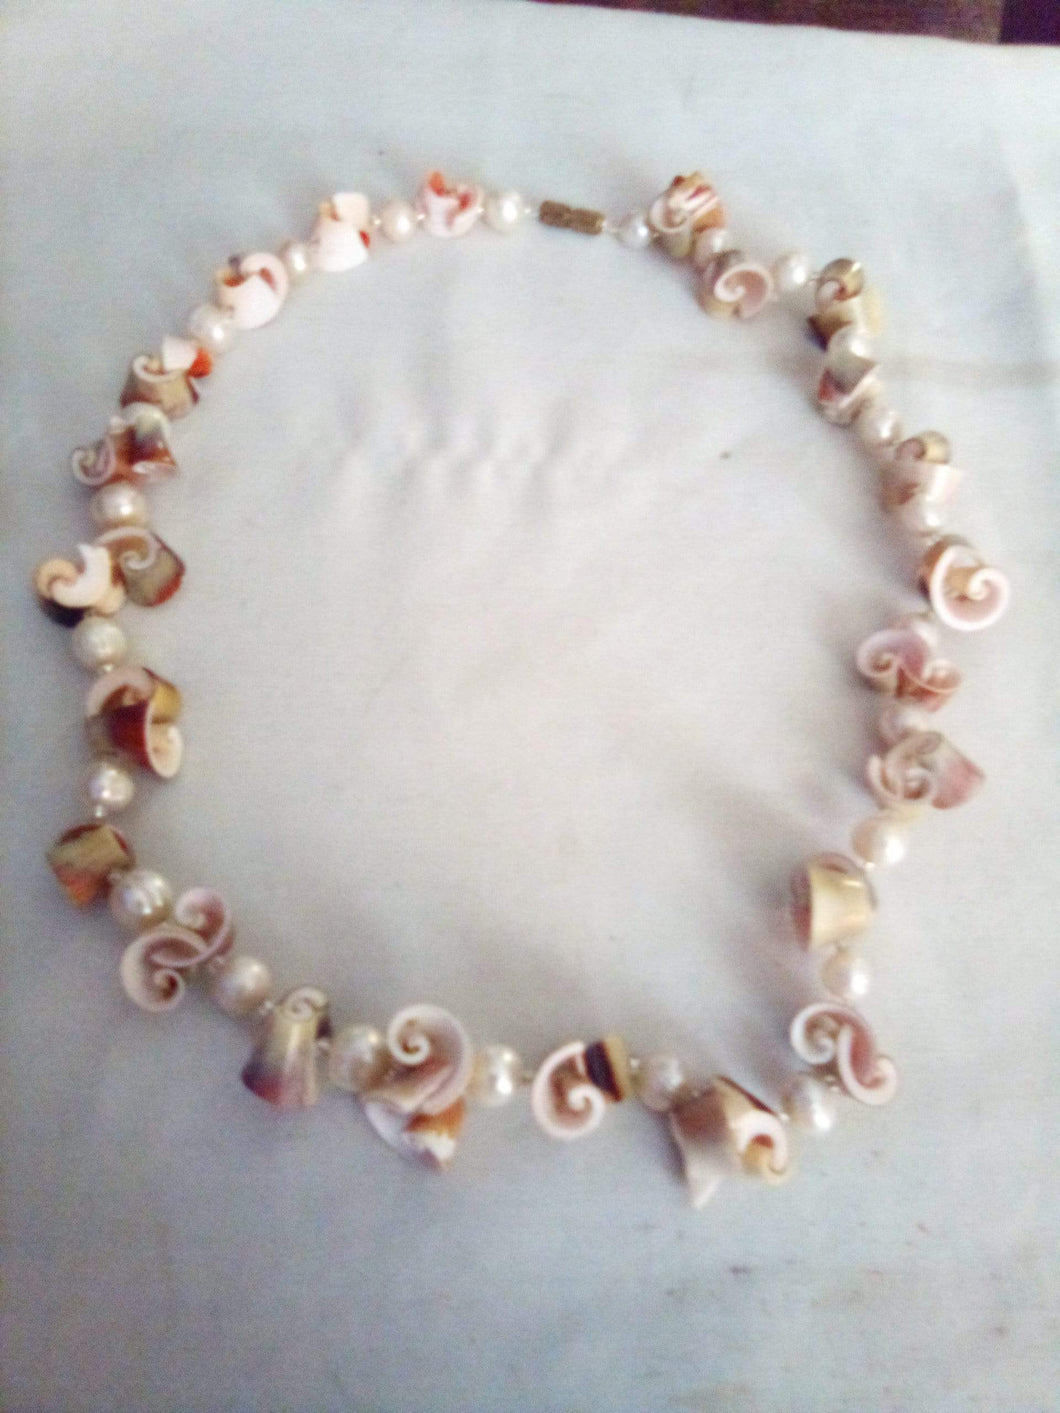 Handmade shell necklace with pearl like dividers - B&P'sringsnthings